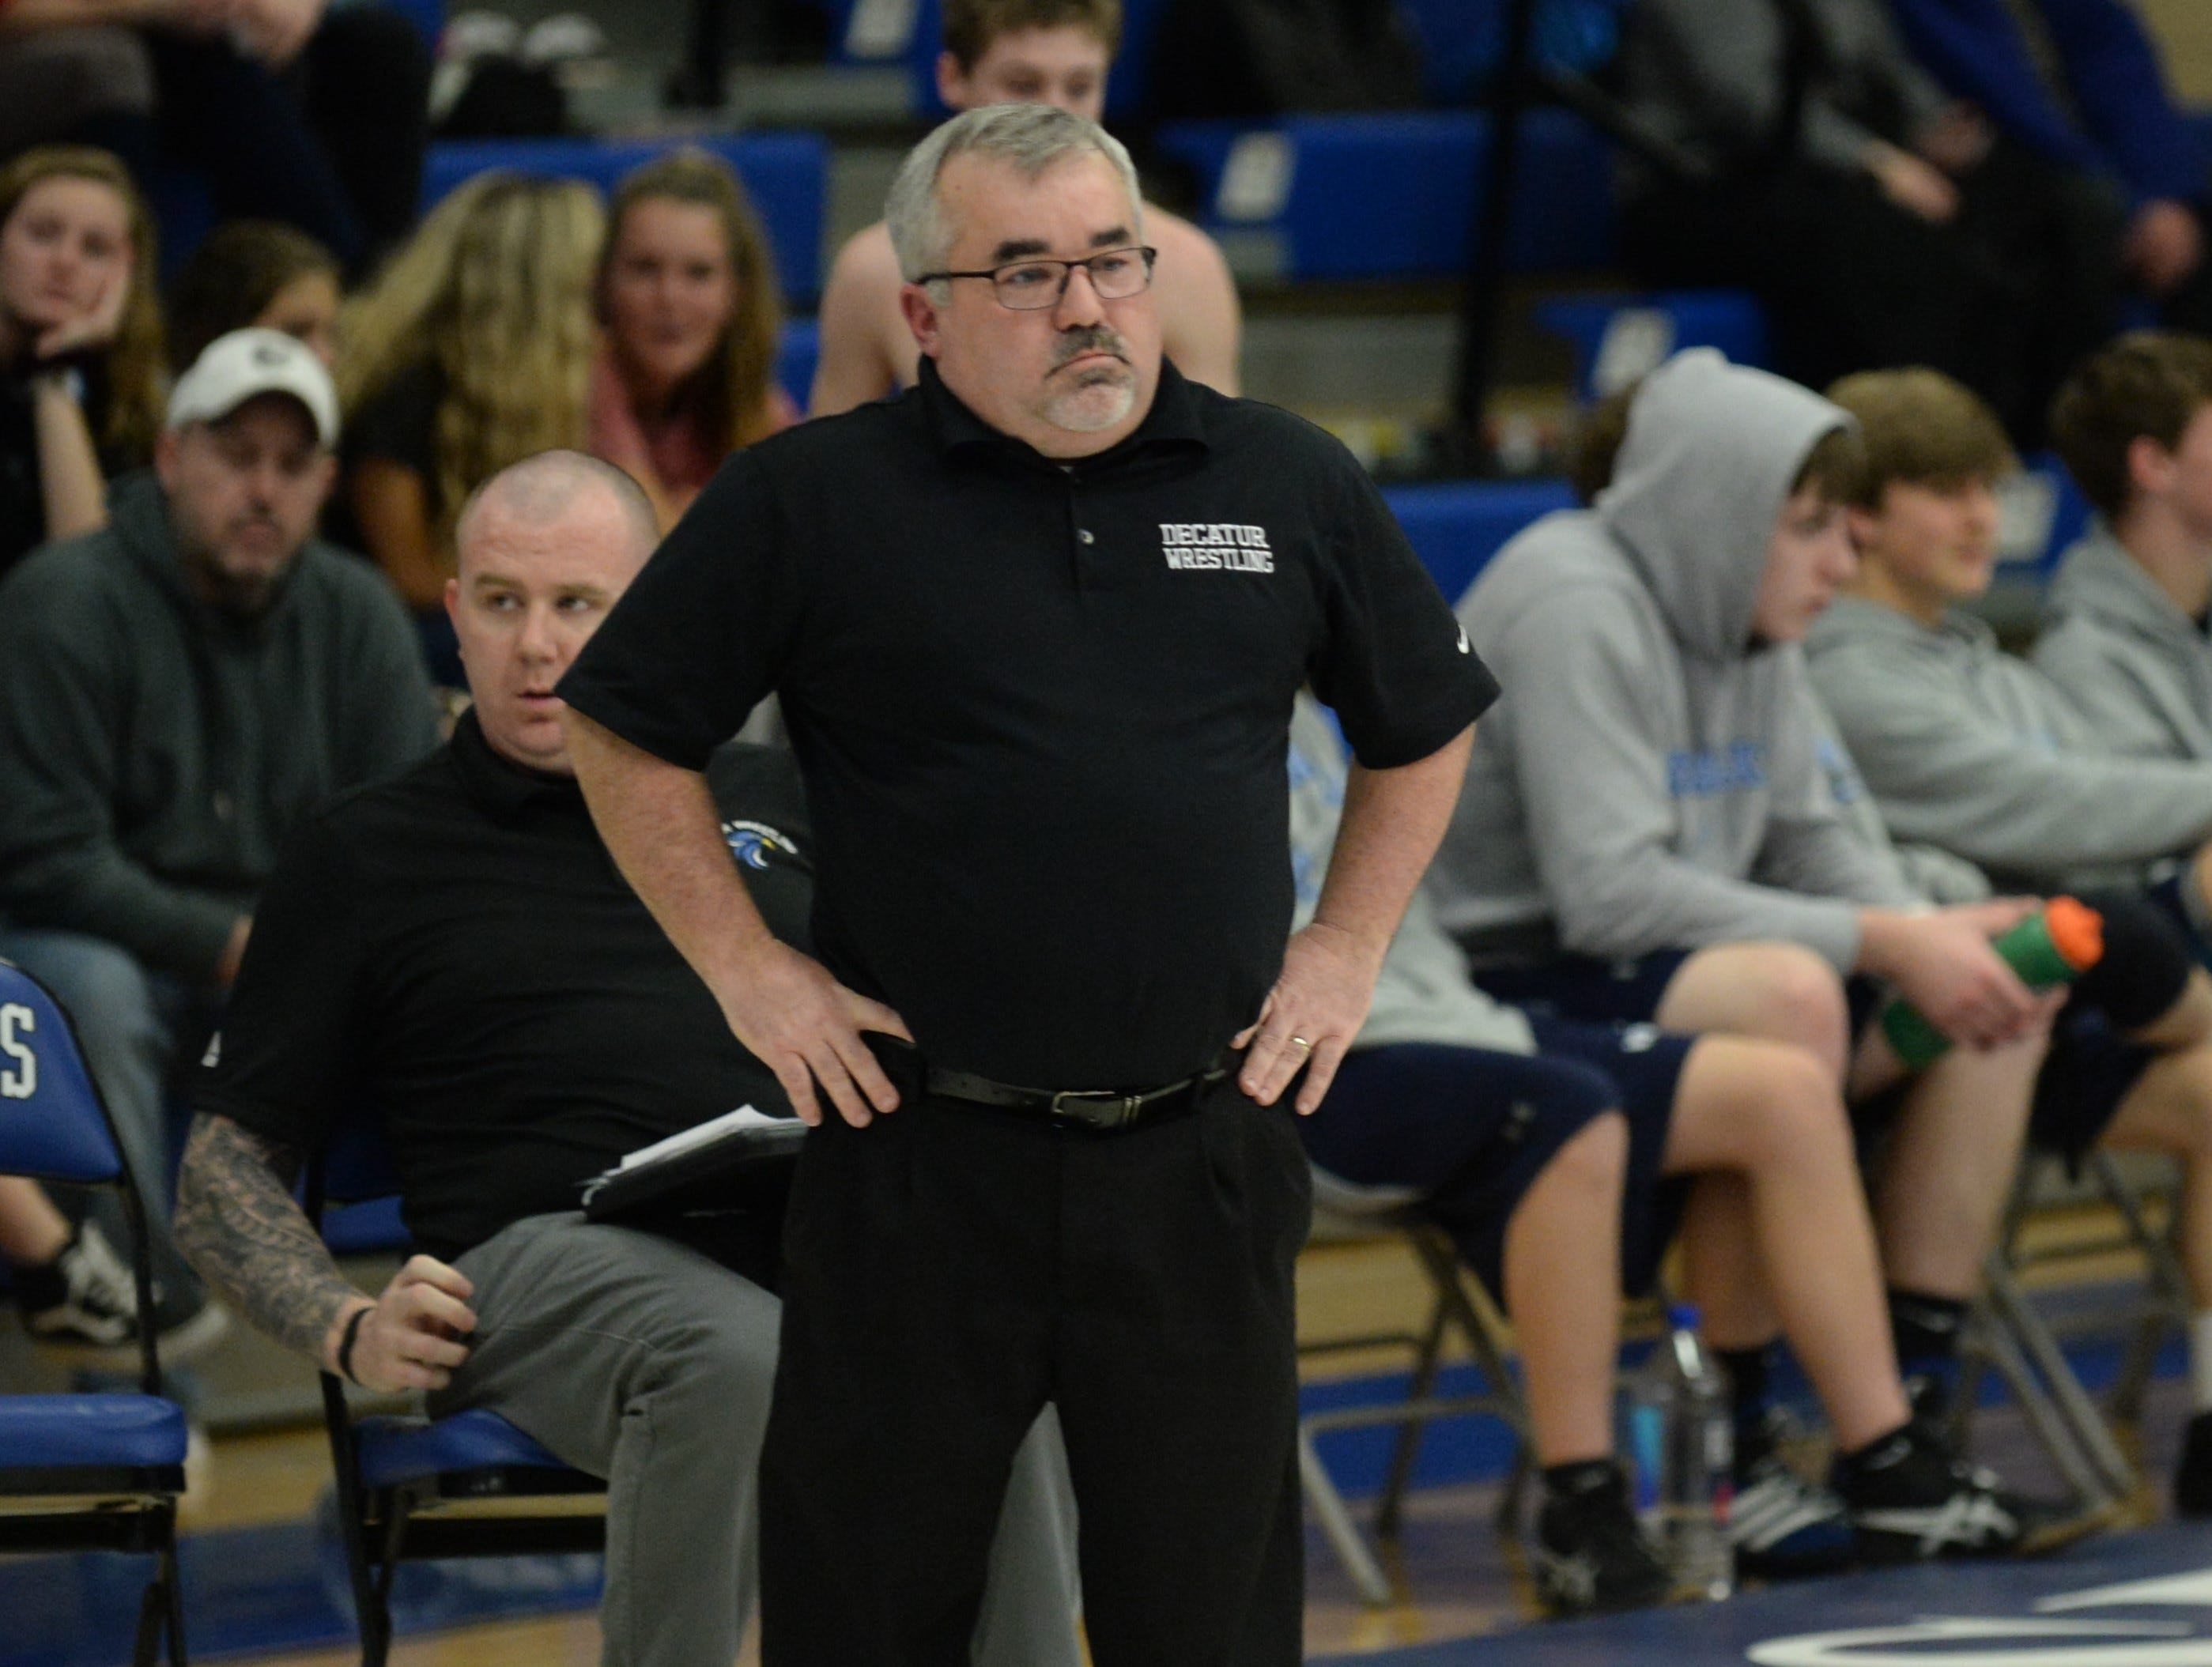 Stephen Decatur wrestling coach Todd Martinek watches his team from the side during the 3A East Regional Championship on Wednesday, Feb. 6, 2019.